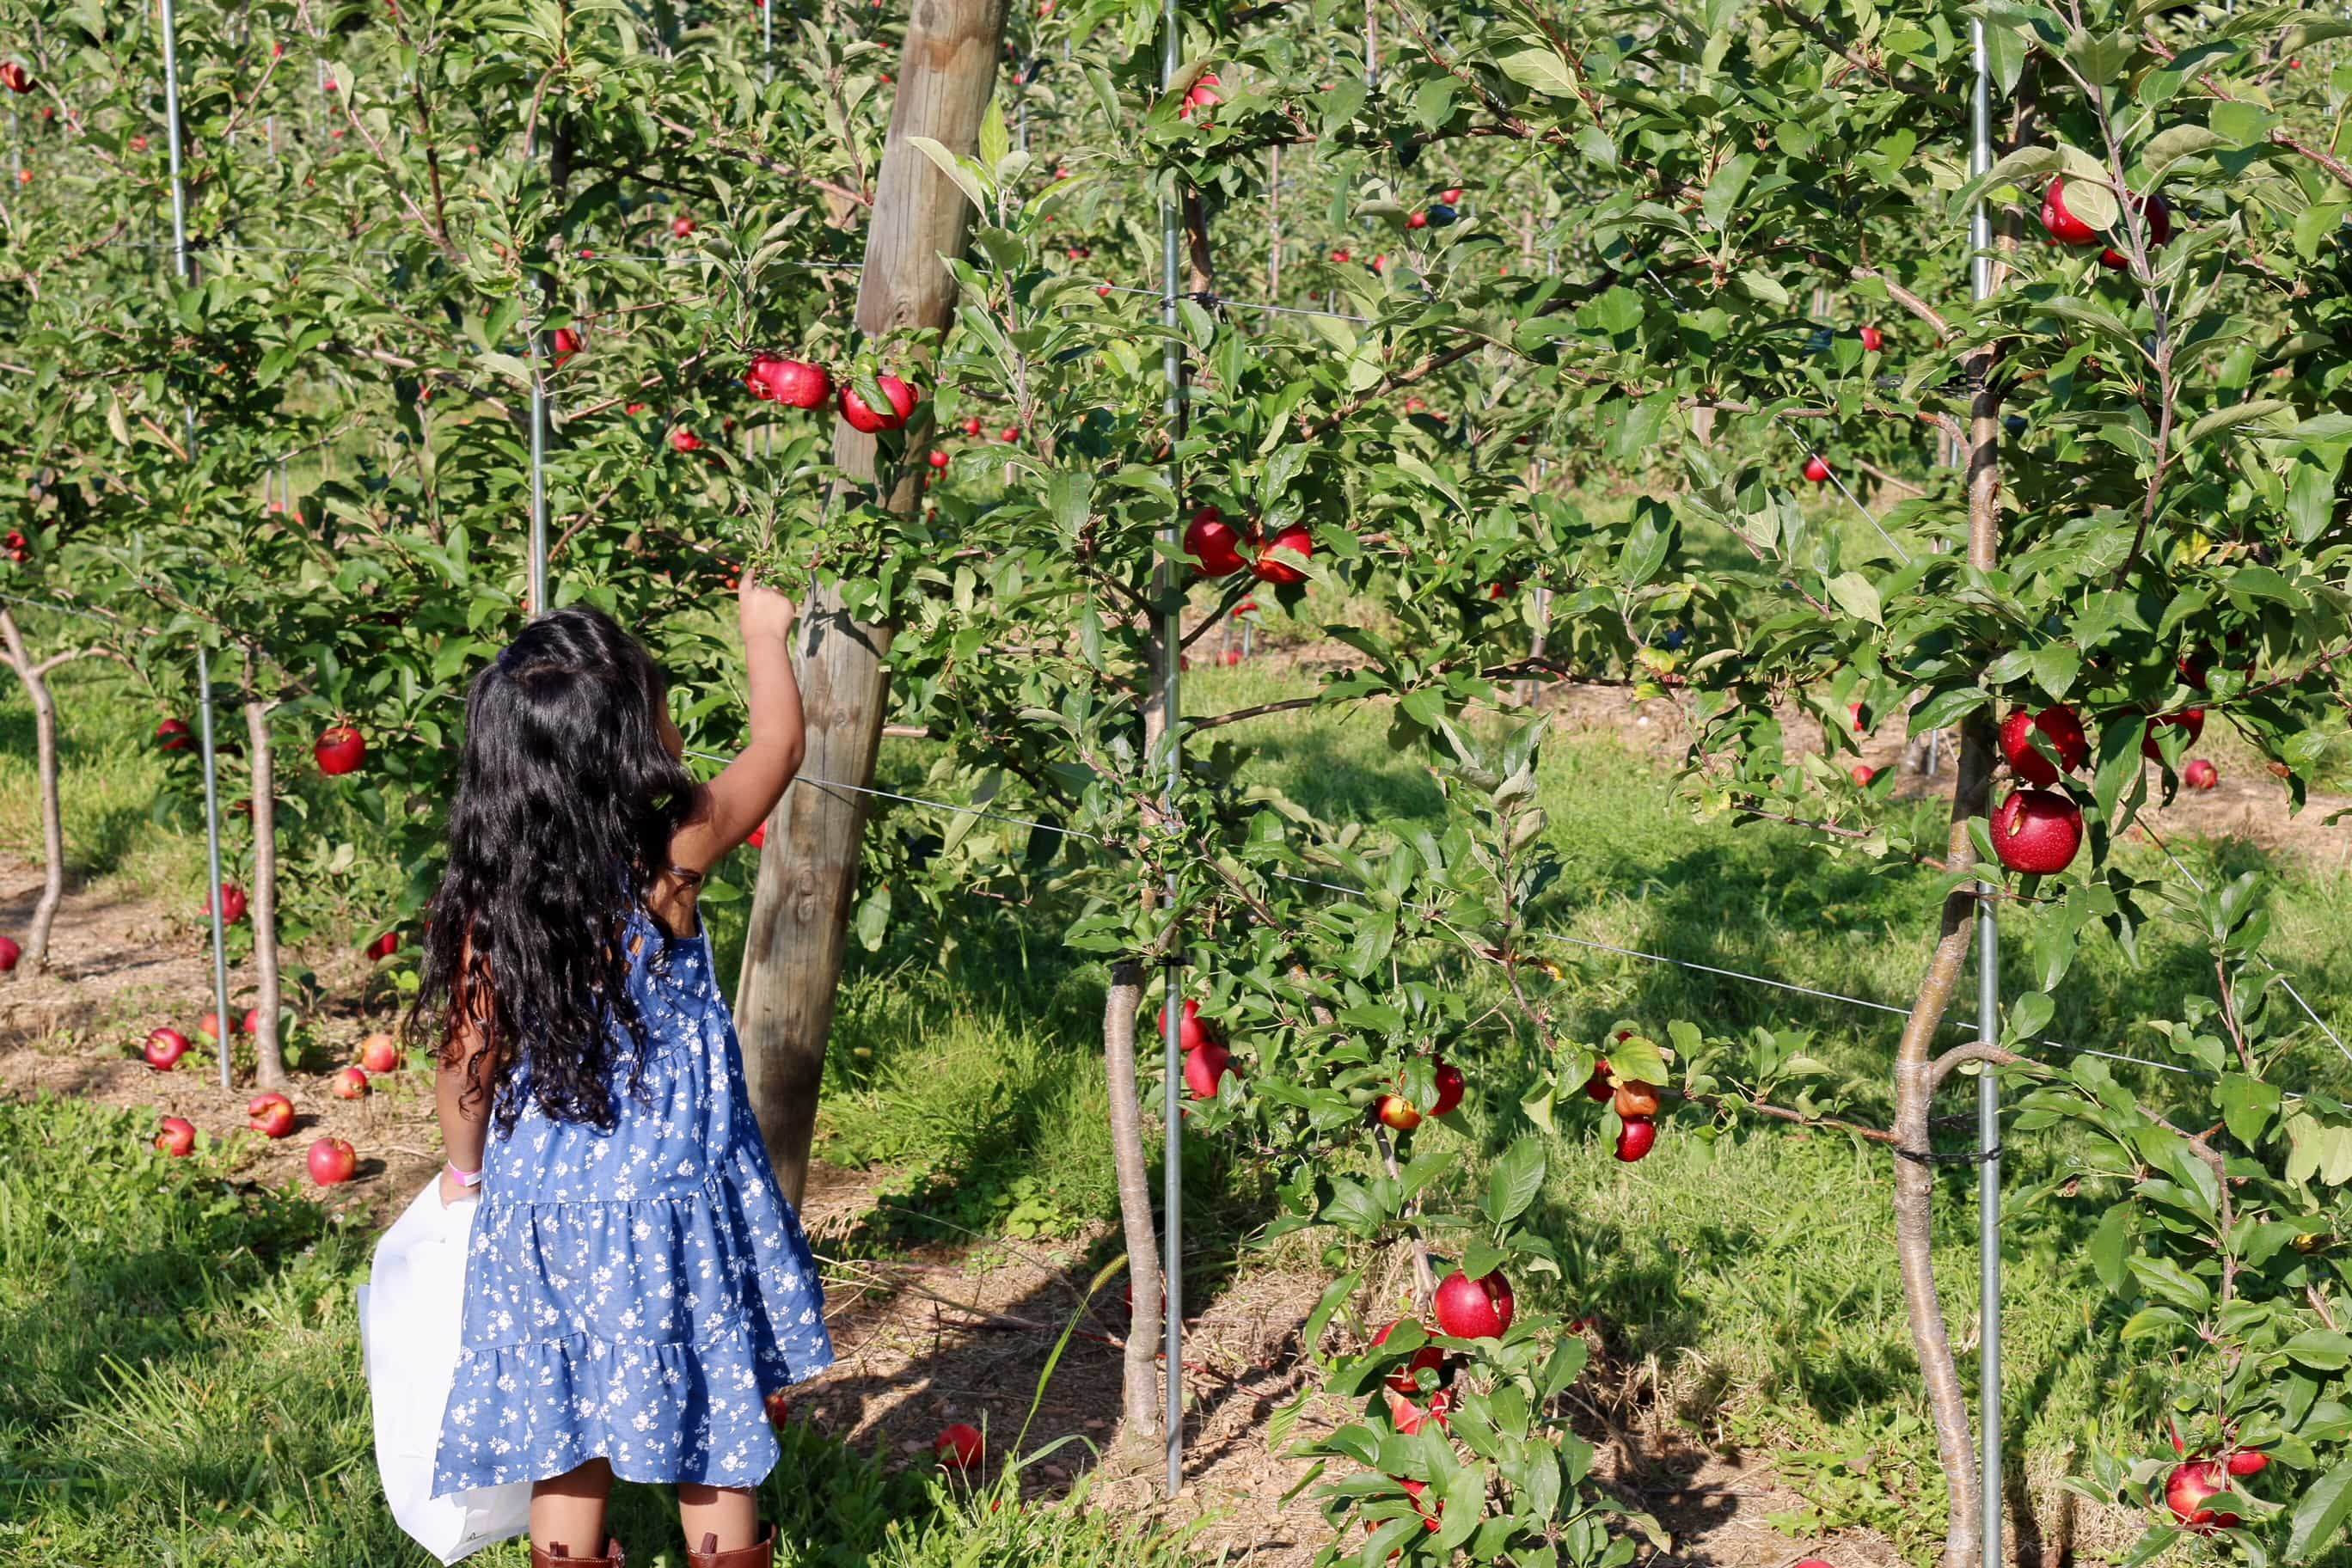 Gaver-Farm-Apple=Harvest-Fall-Festivals-Recogiendo-Manzanas